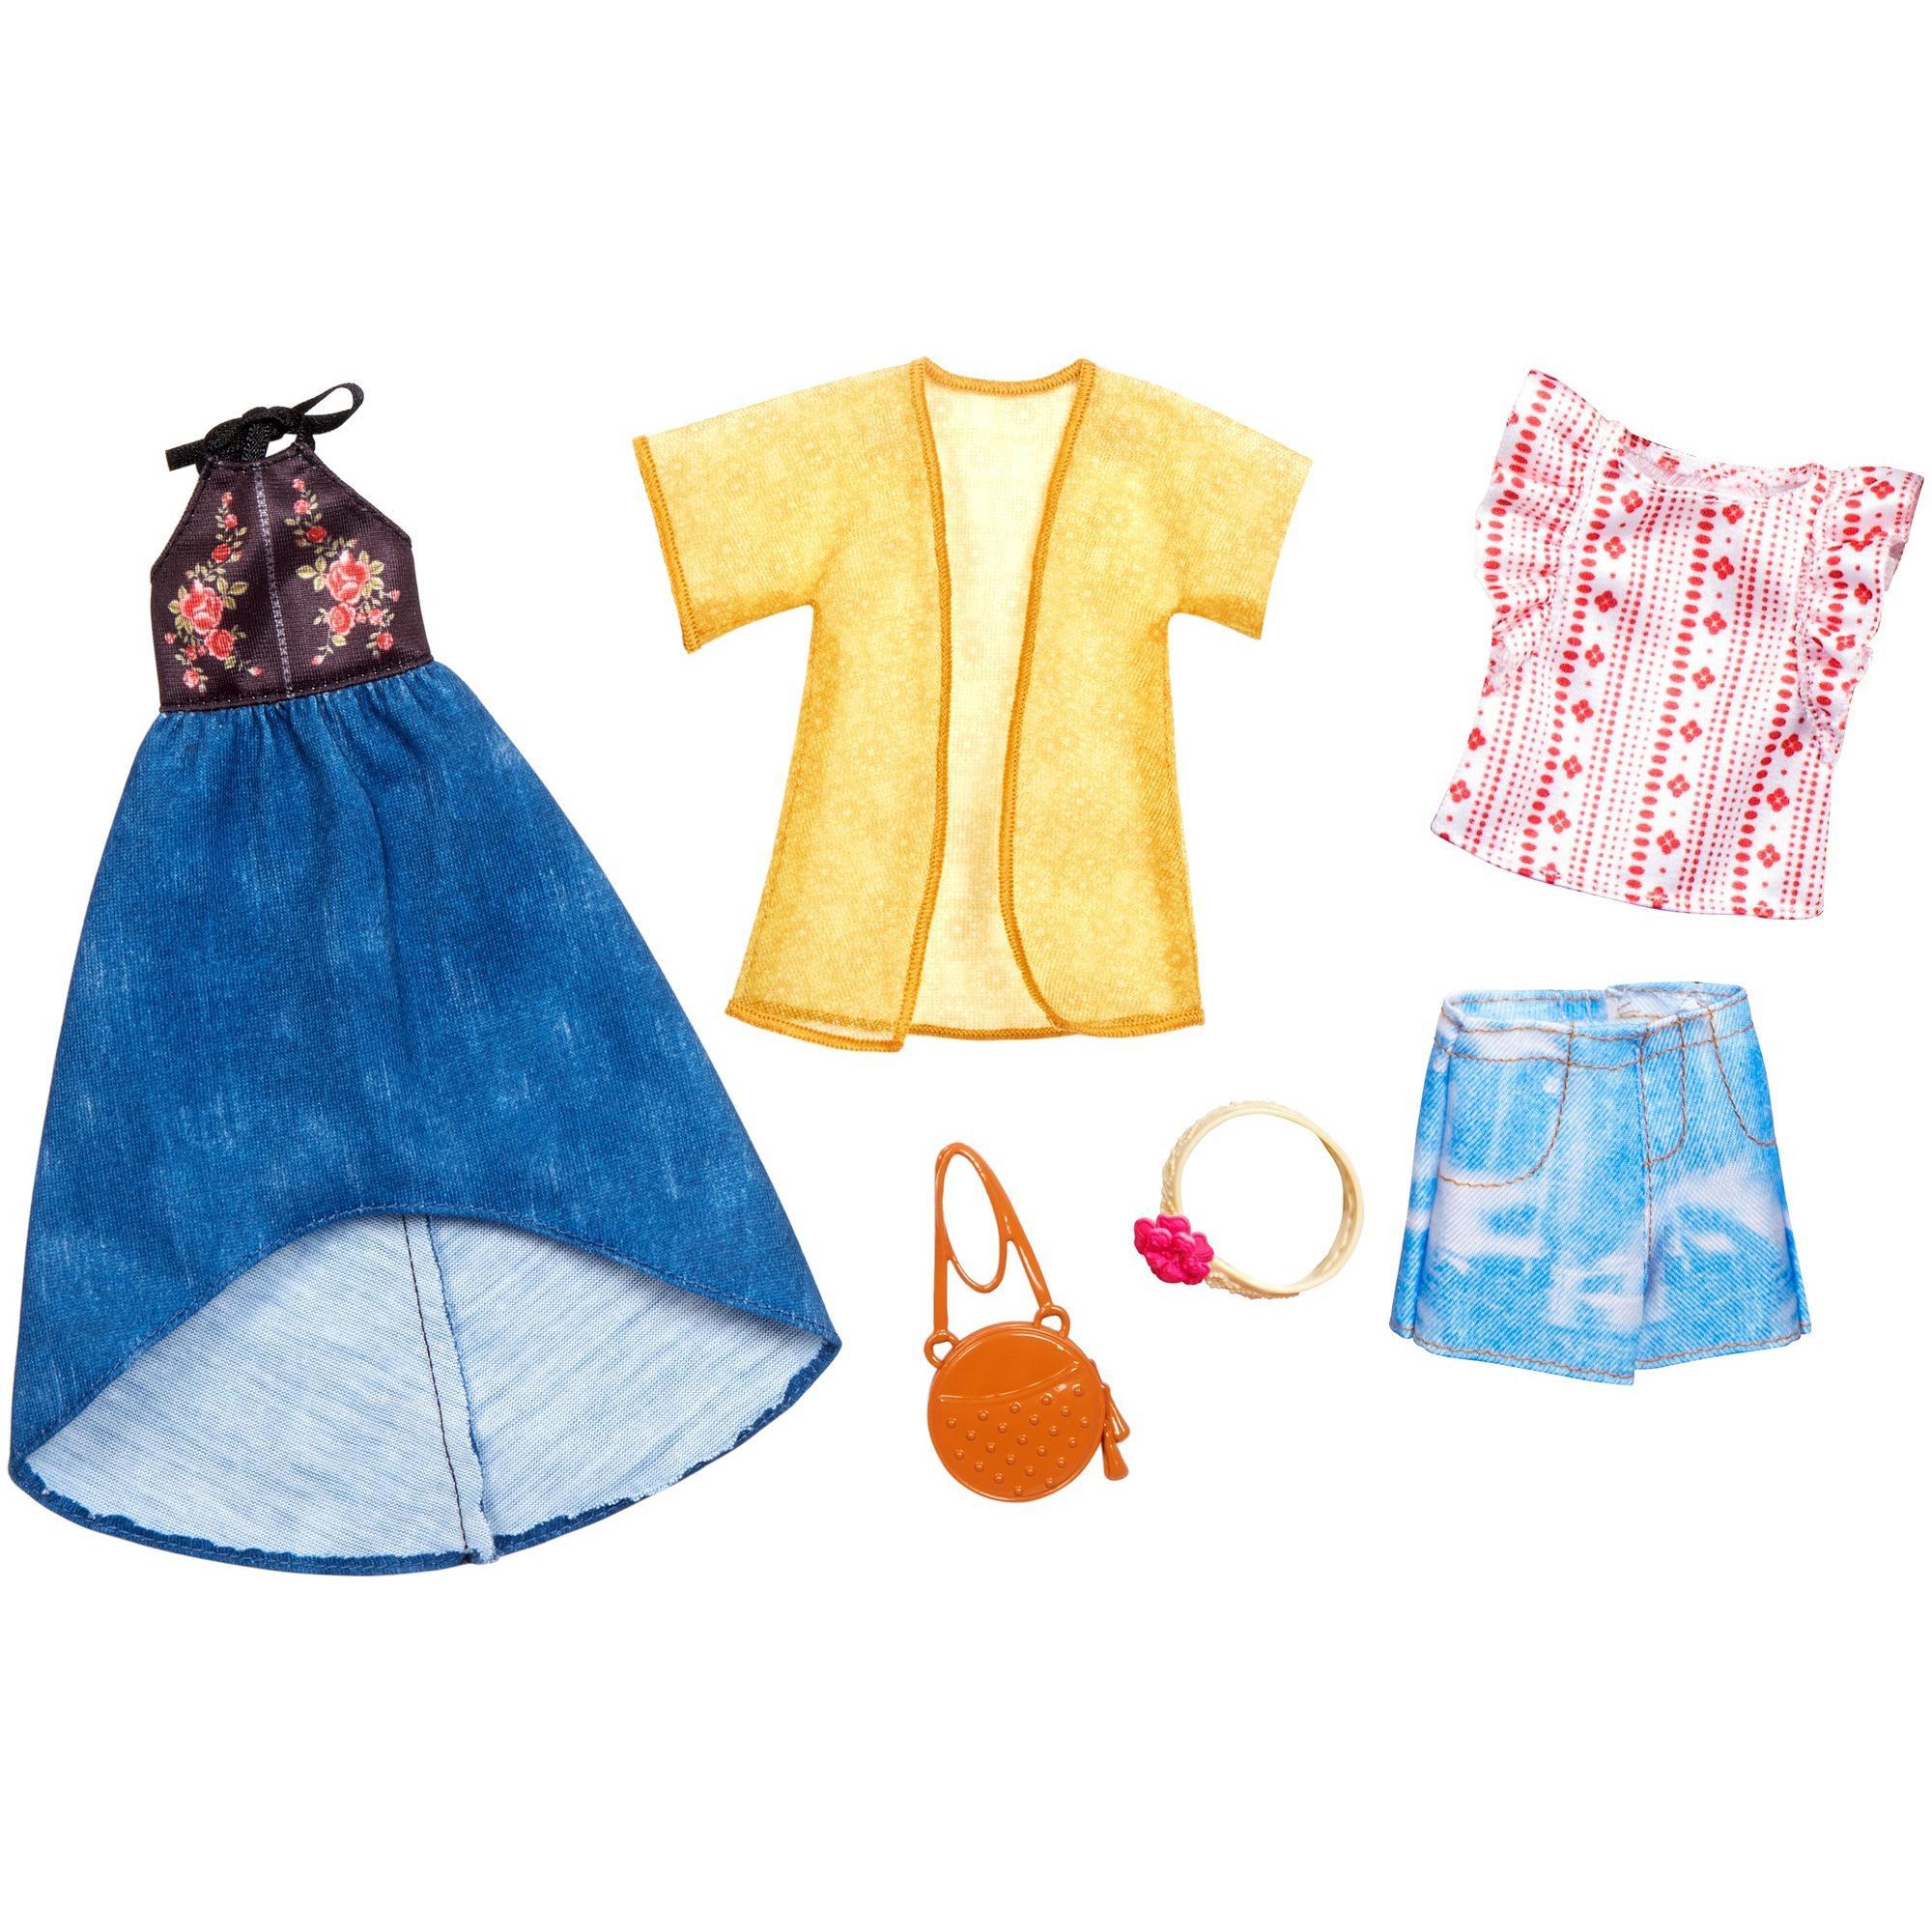 Barbie Fashion Sets Doll Clothes with 2 Urban Boho-Inspired Looks